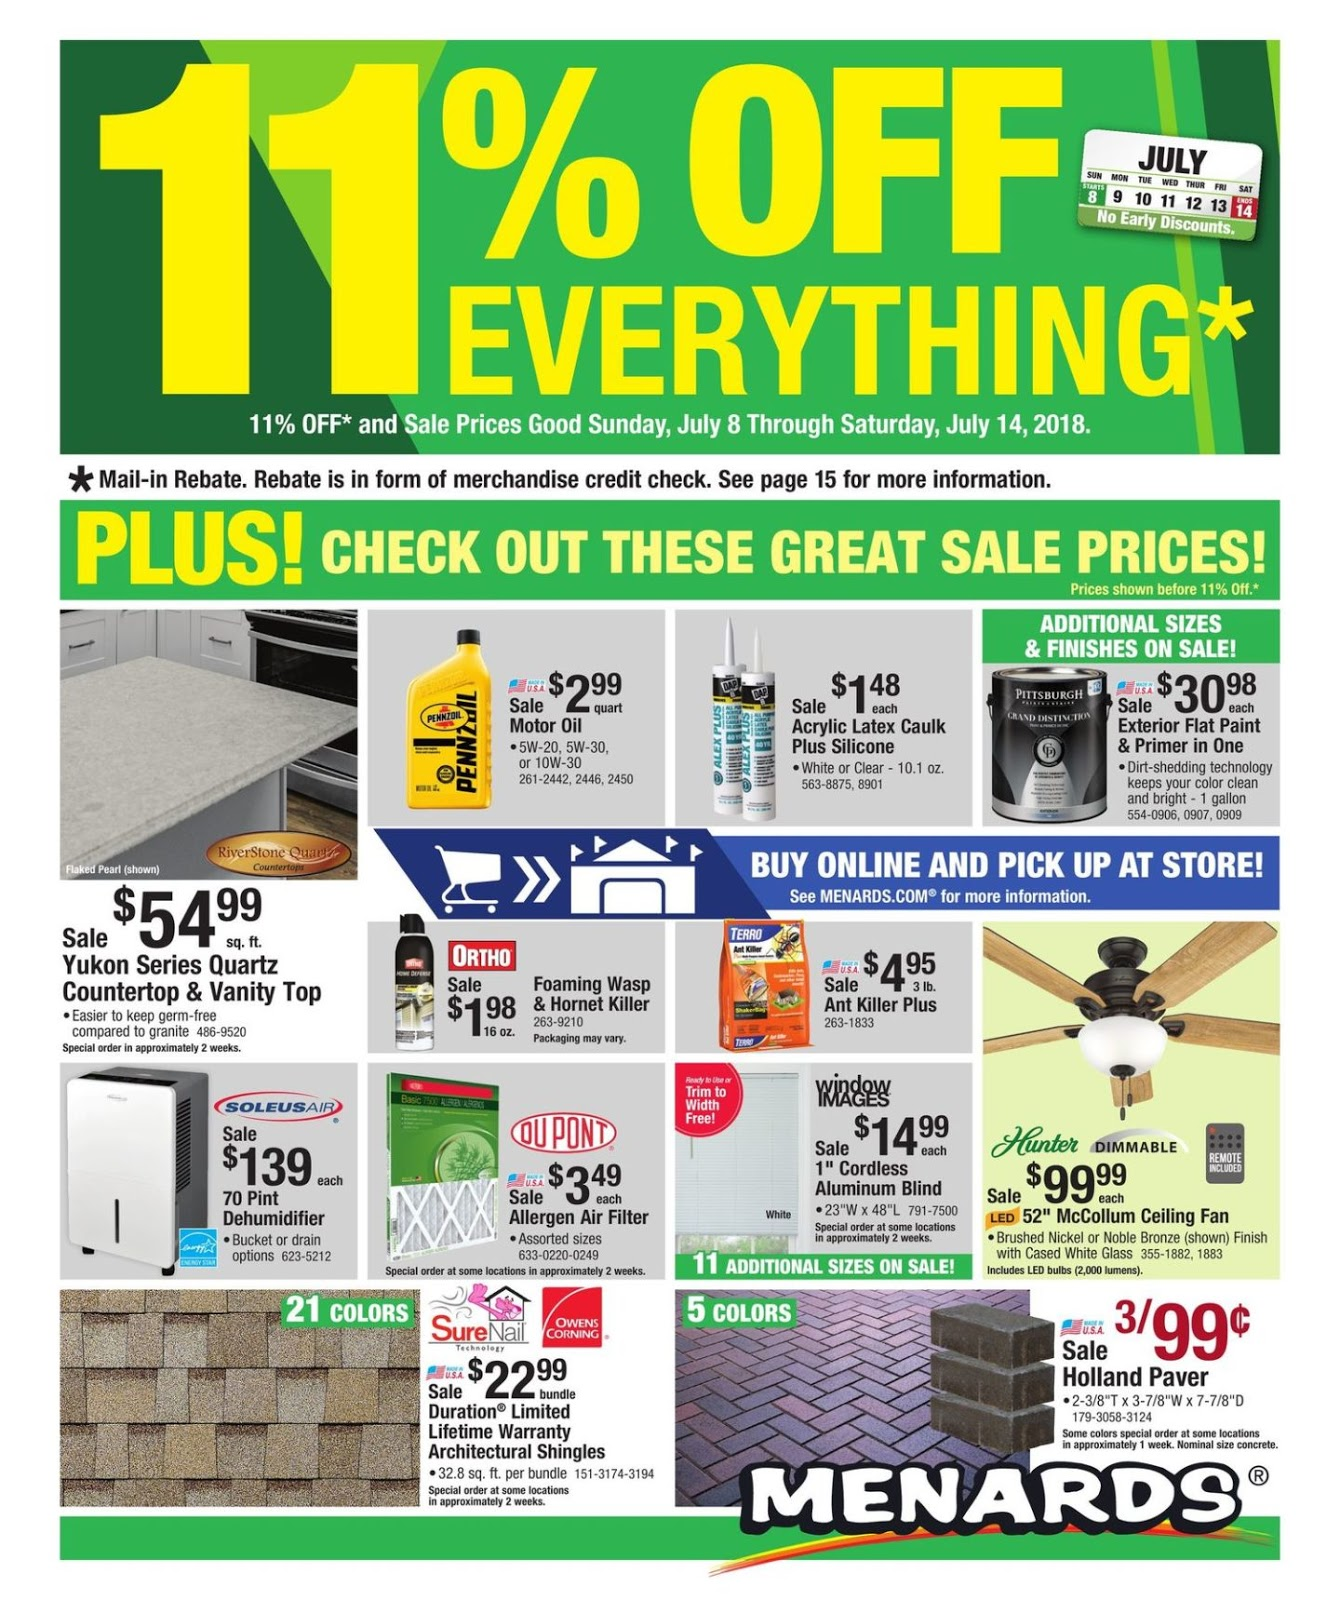 Menards sales flyers / Valentain day